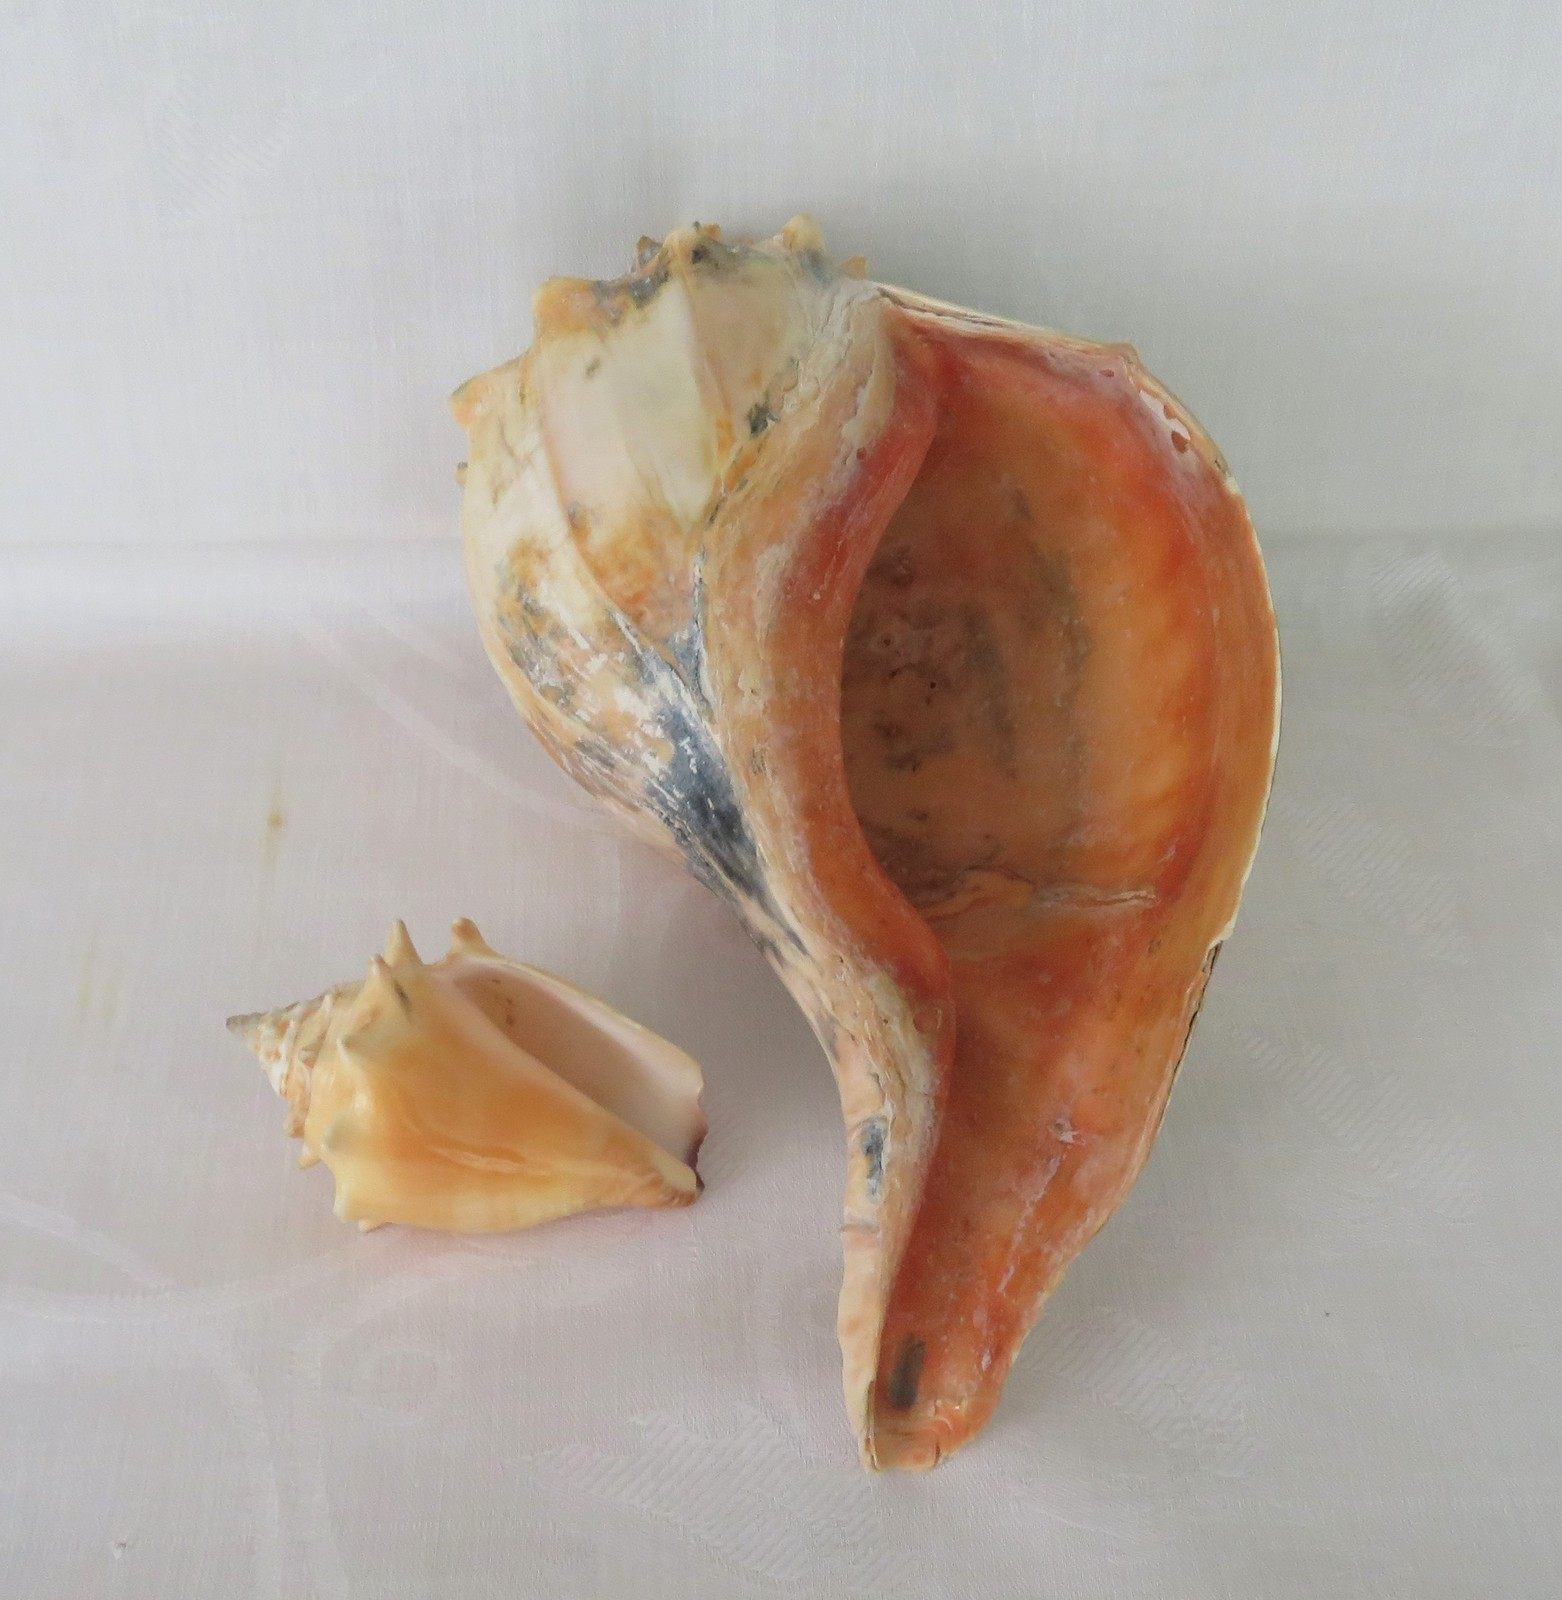 Primary image for Conch Sea Shells, TWO